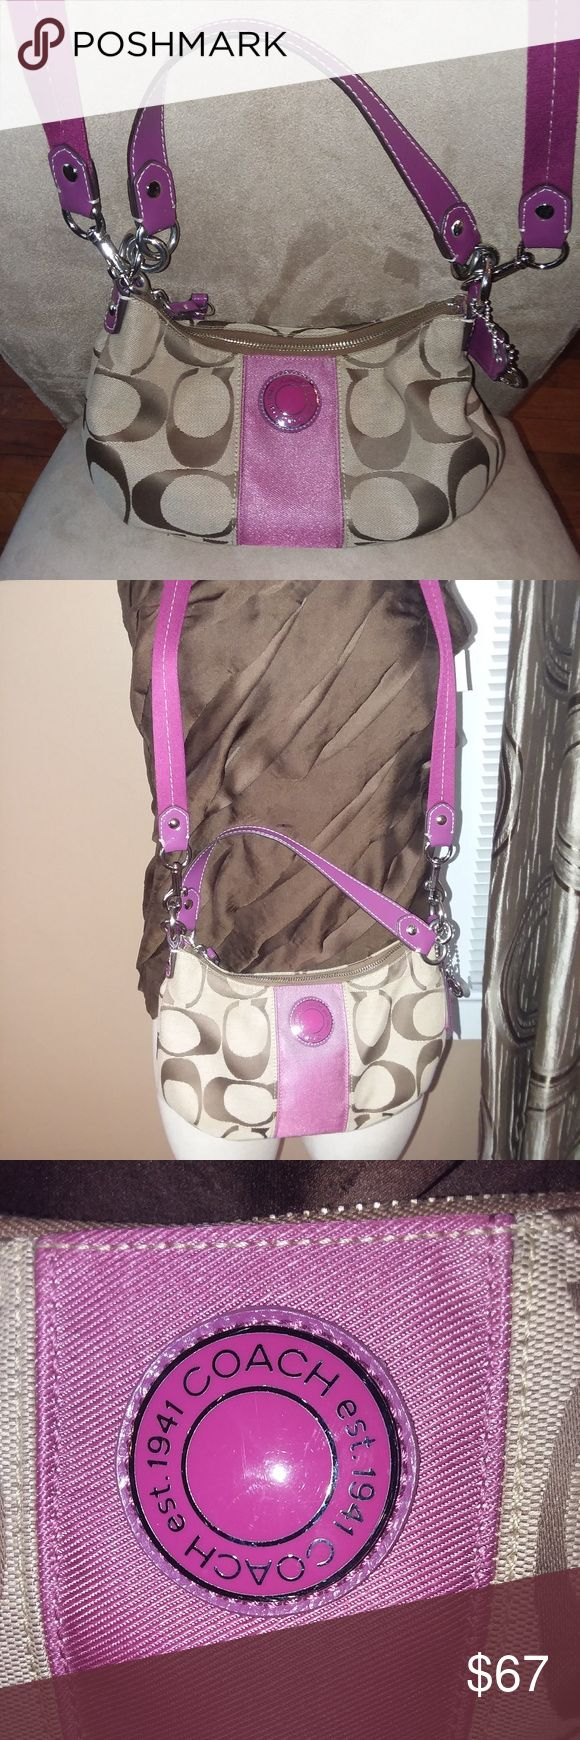 """Coach Hobo Bag w/Purple Accent Very pretty small Coach Hobo Shoulder/Handbag is perfect for a """"first"""" Coach. This bag has a detachable longer velvet strap for cross body wear. Purple accent accentuate this bag.  Key chain is also attached. Dimensions: 23"""" drop (longer detachable strap), 9"""" small drop strap 5"""" Height 9""""Length and 3"""" width. This bag is in perfect condition. No signs of use. Coach Bags Hobos"""